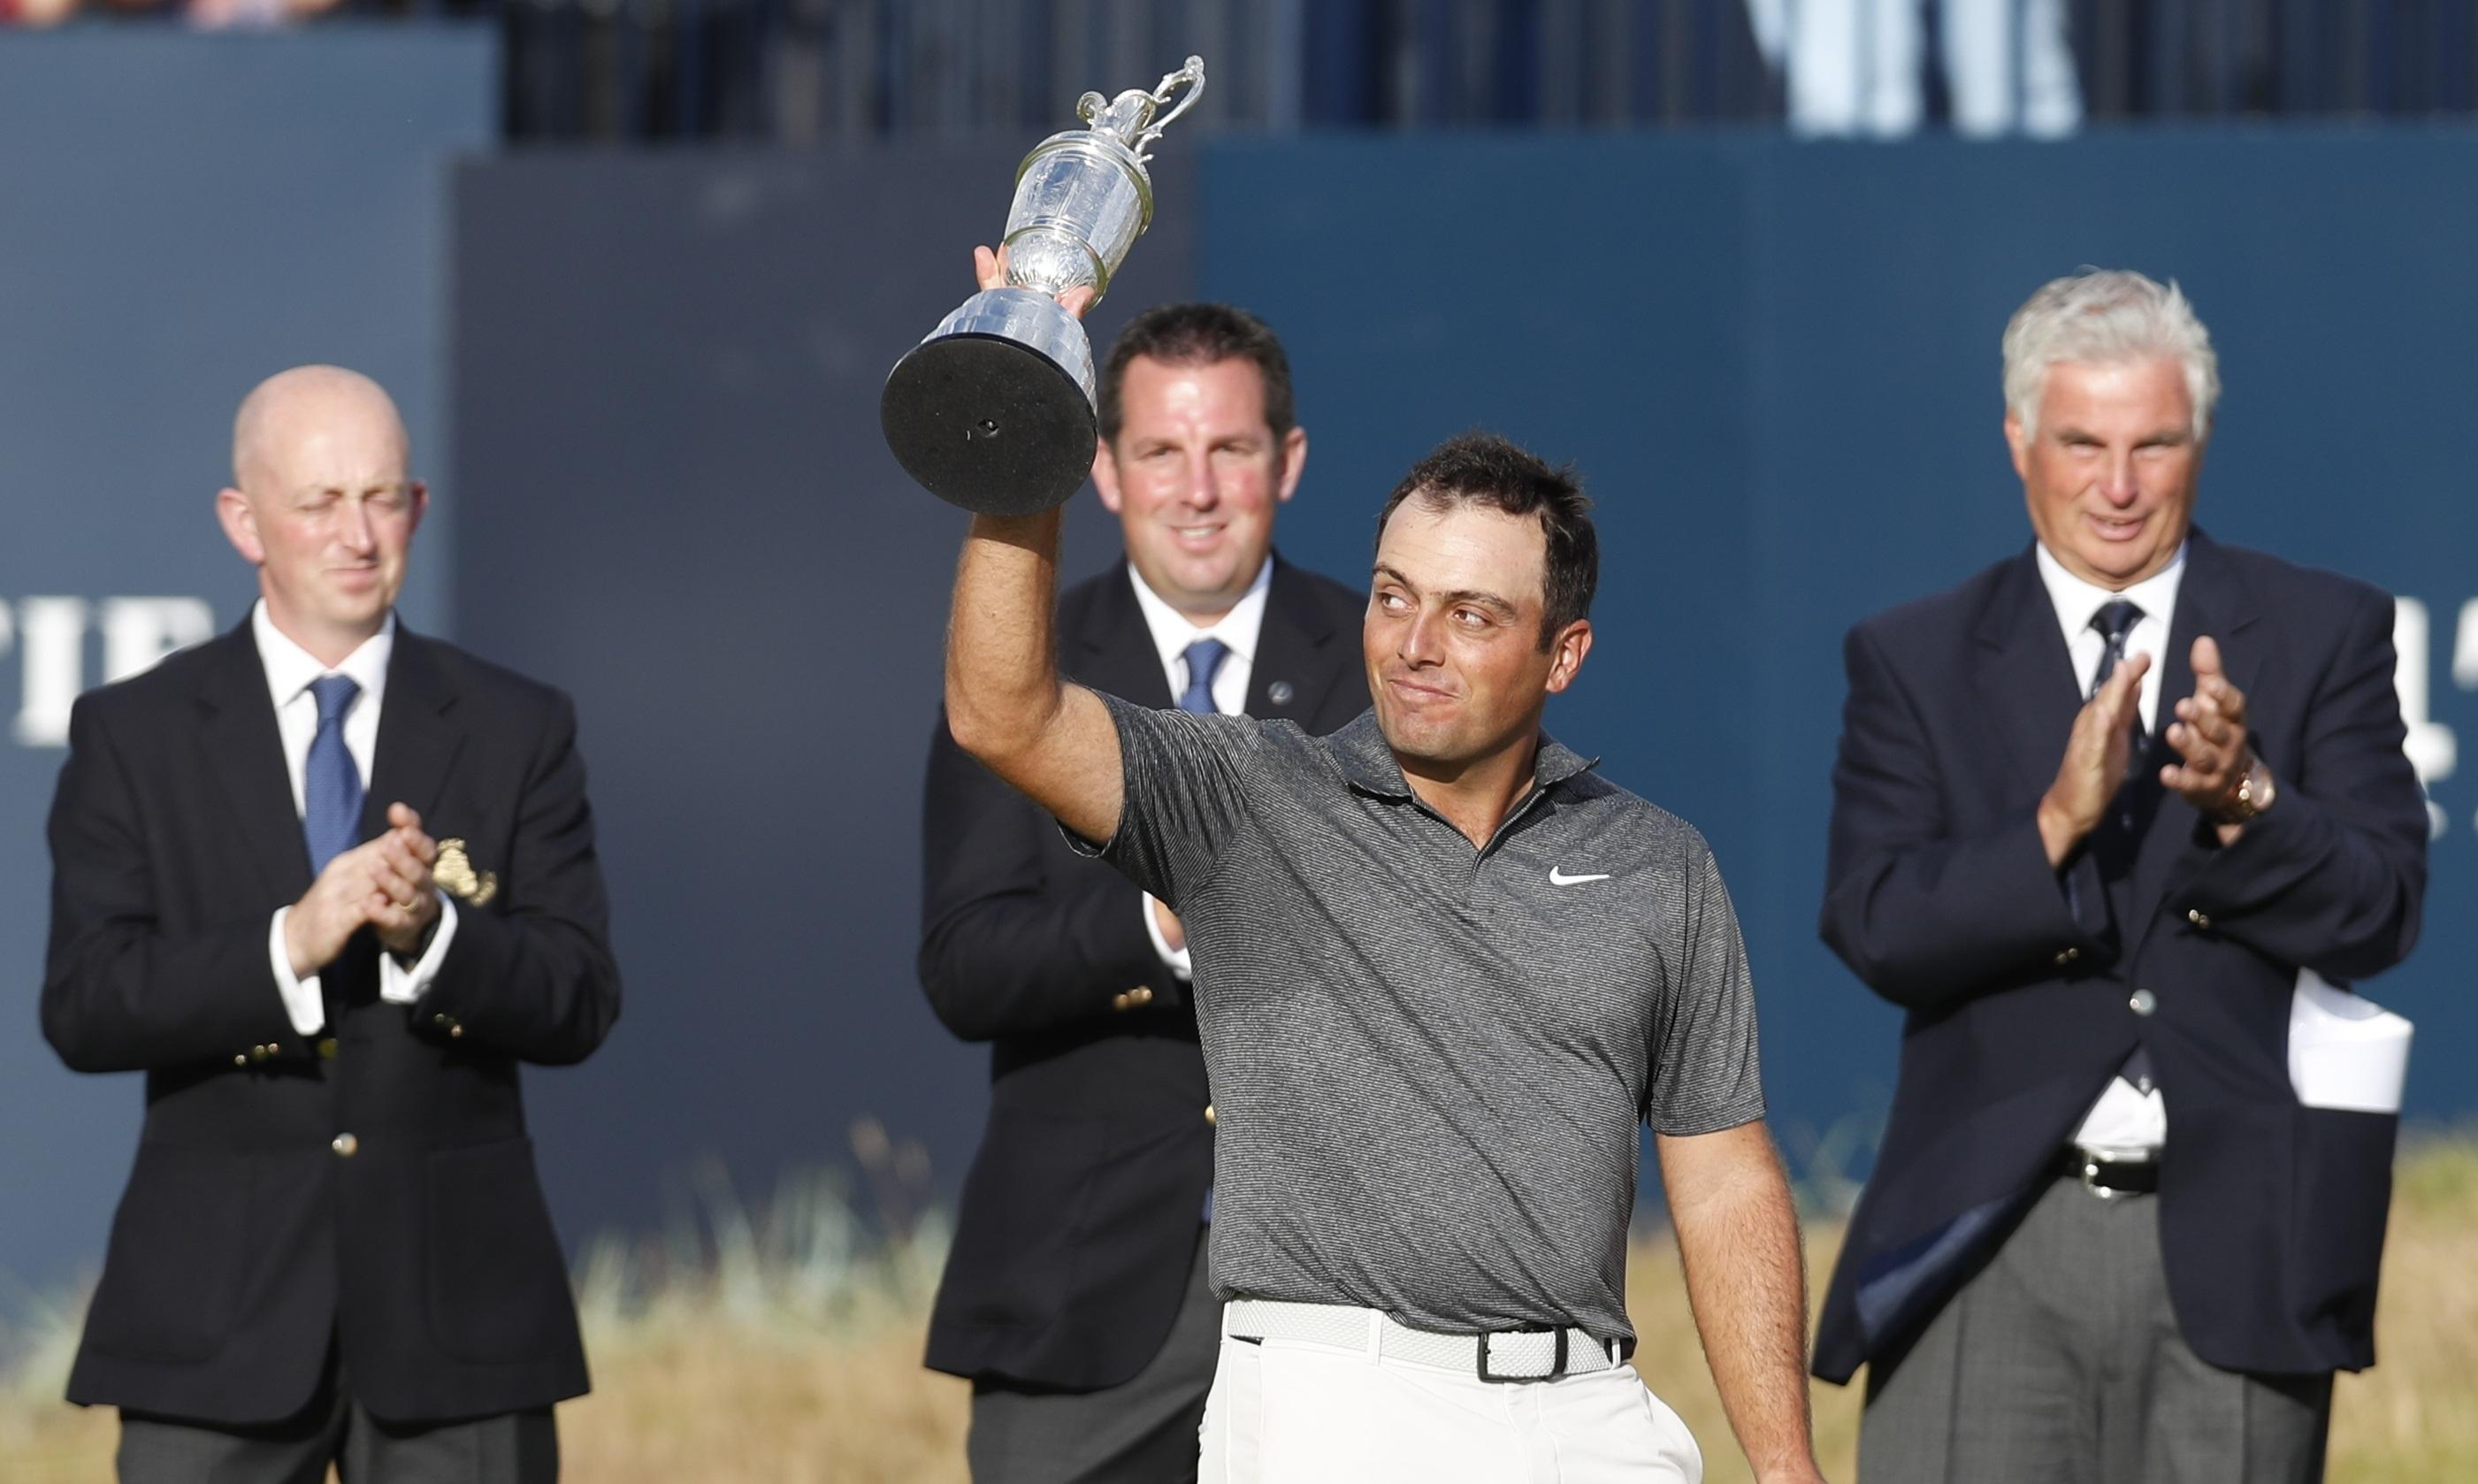 Fran Molinari saw off the game's heavyweights at windswept Carnoustie